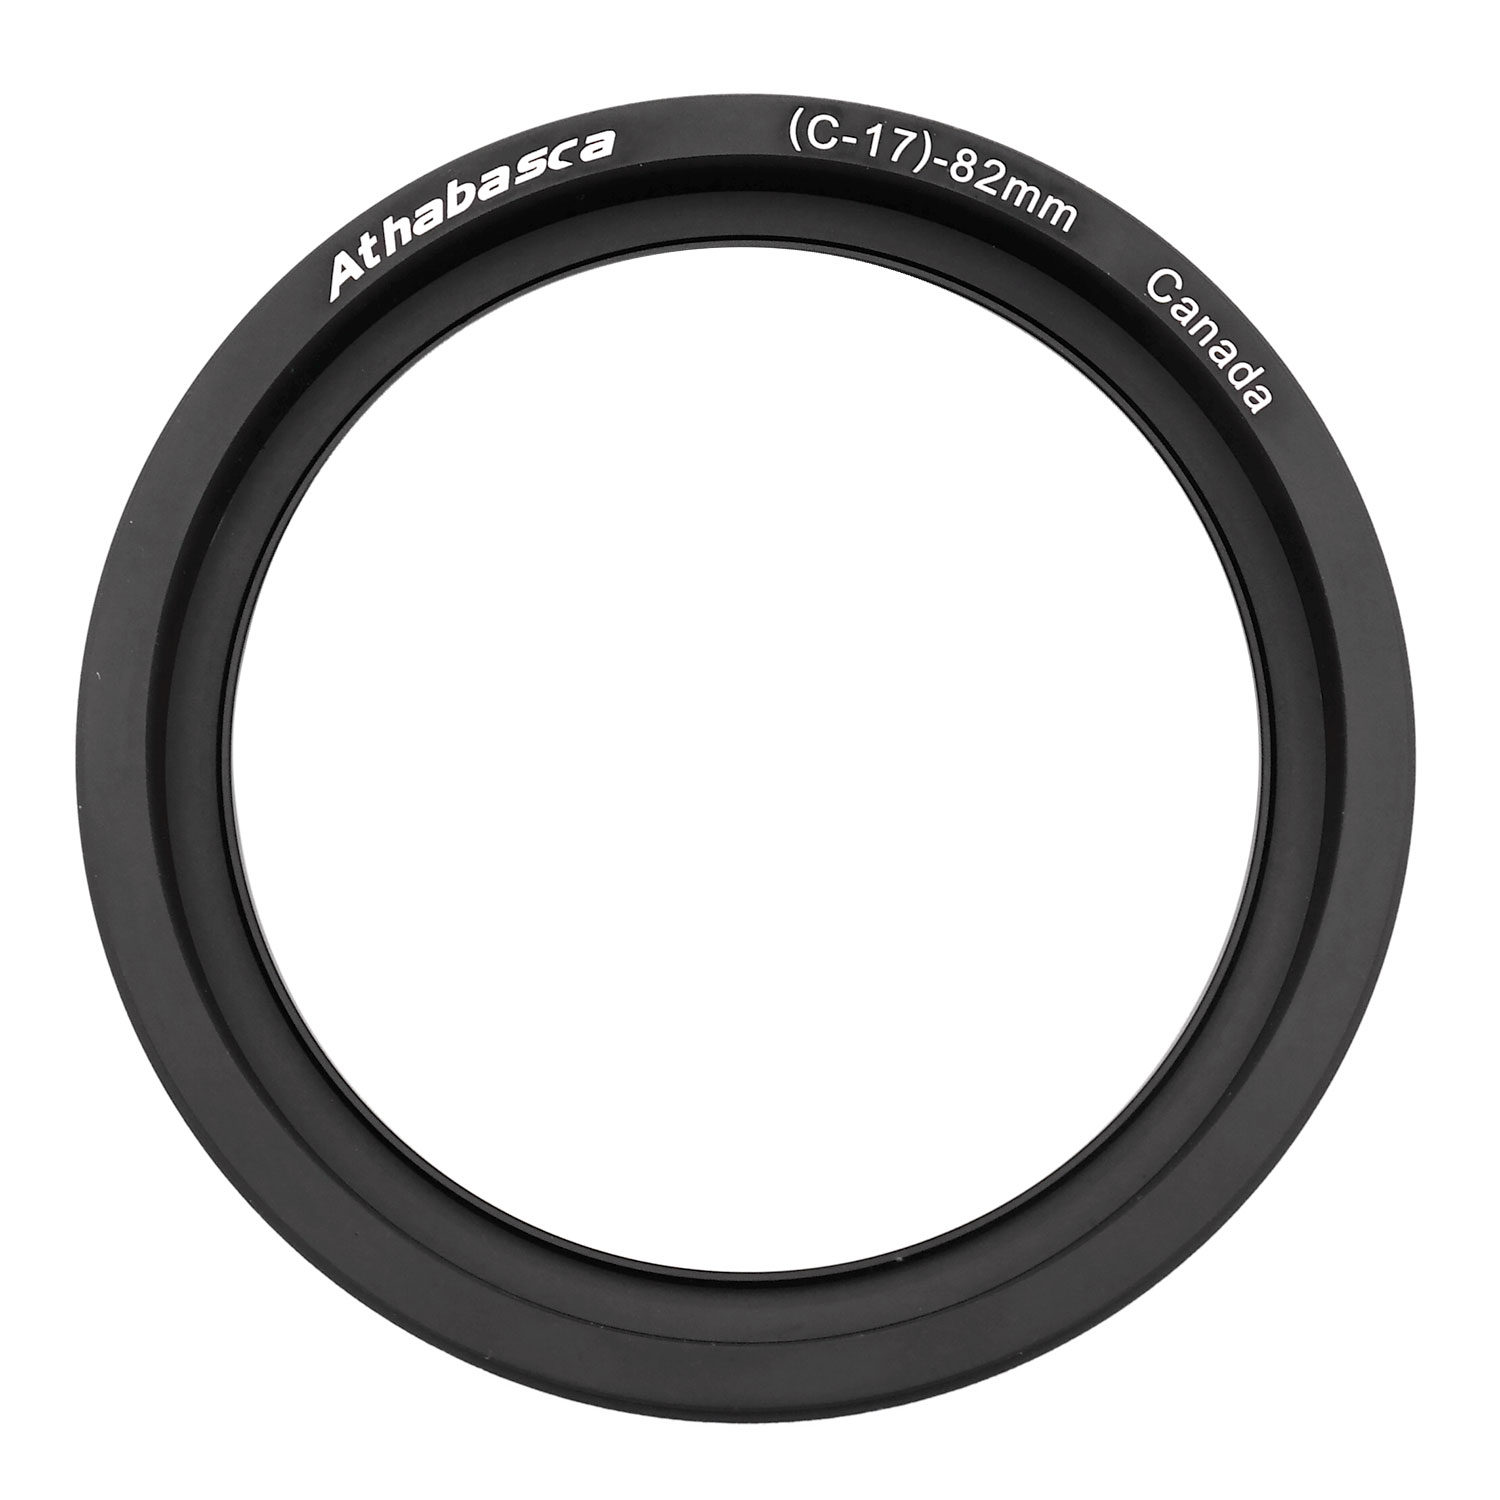 Foto van Athabasca Adapterring 82mm voor Canon TS-E 17mm Filter Adapter System